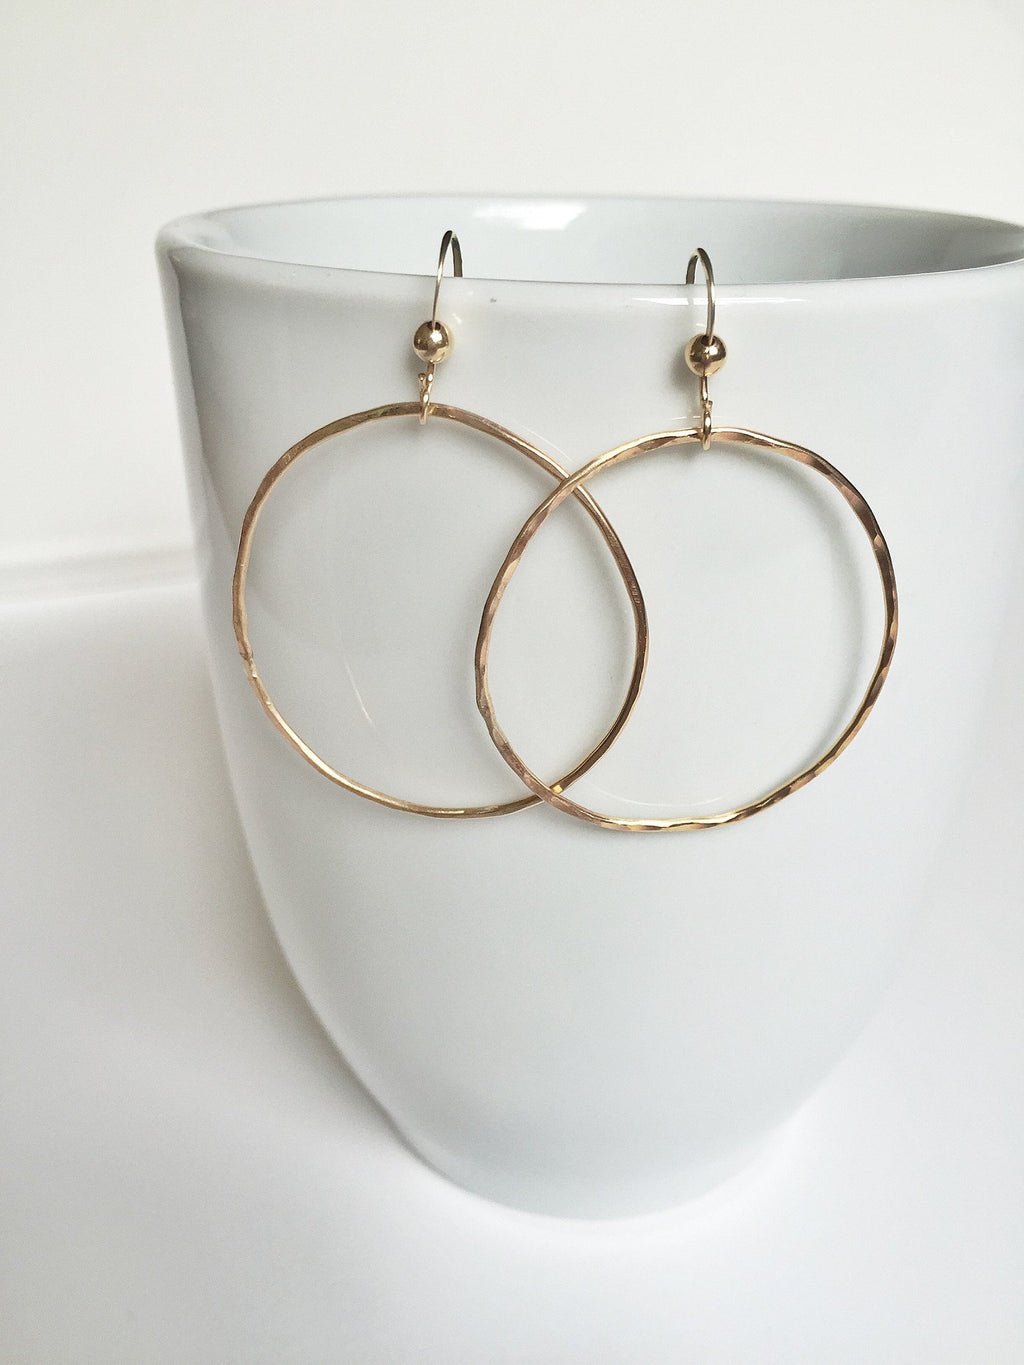 Adorn 512 - Goldie Earrings - Large